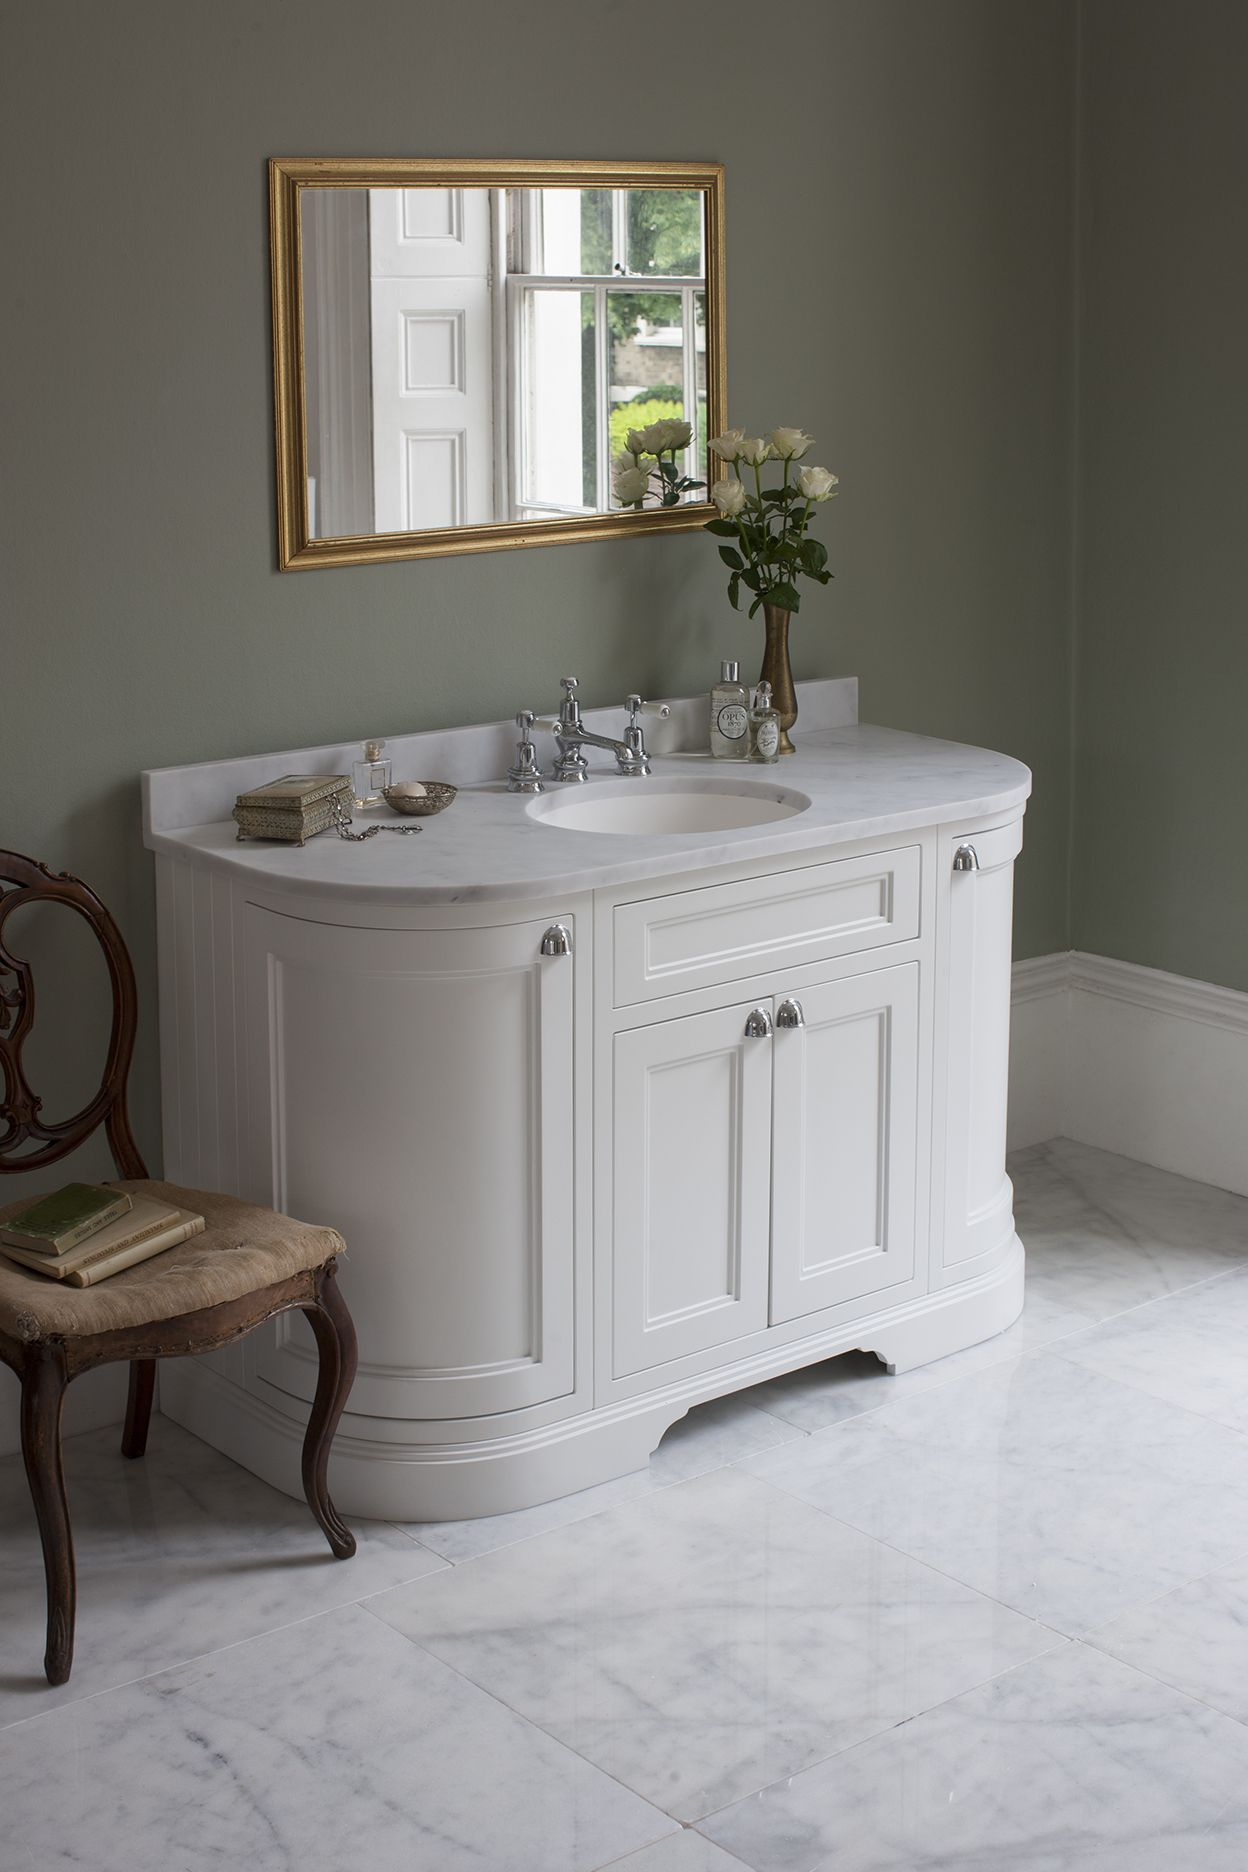 Curved Bathroom Vanity Unit - Matt white 134 curved freestanding vanity unit with doors and drawers from burlington bathrooms